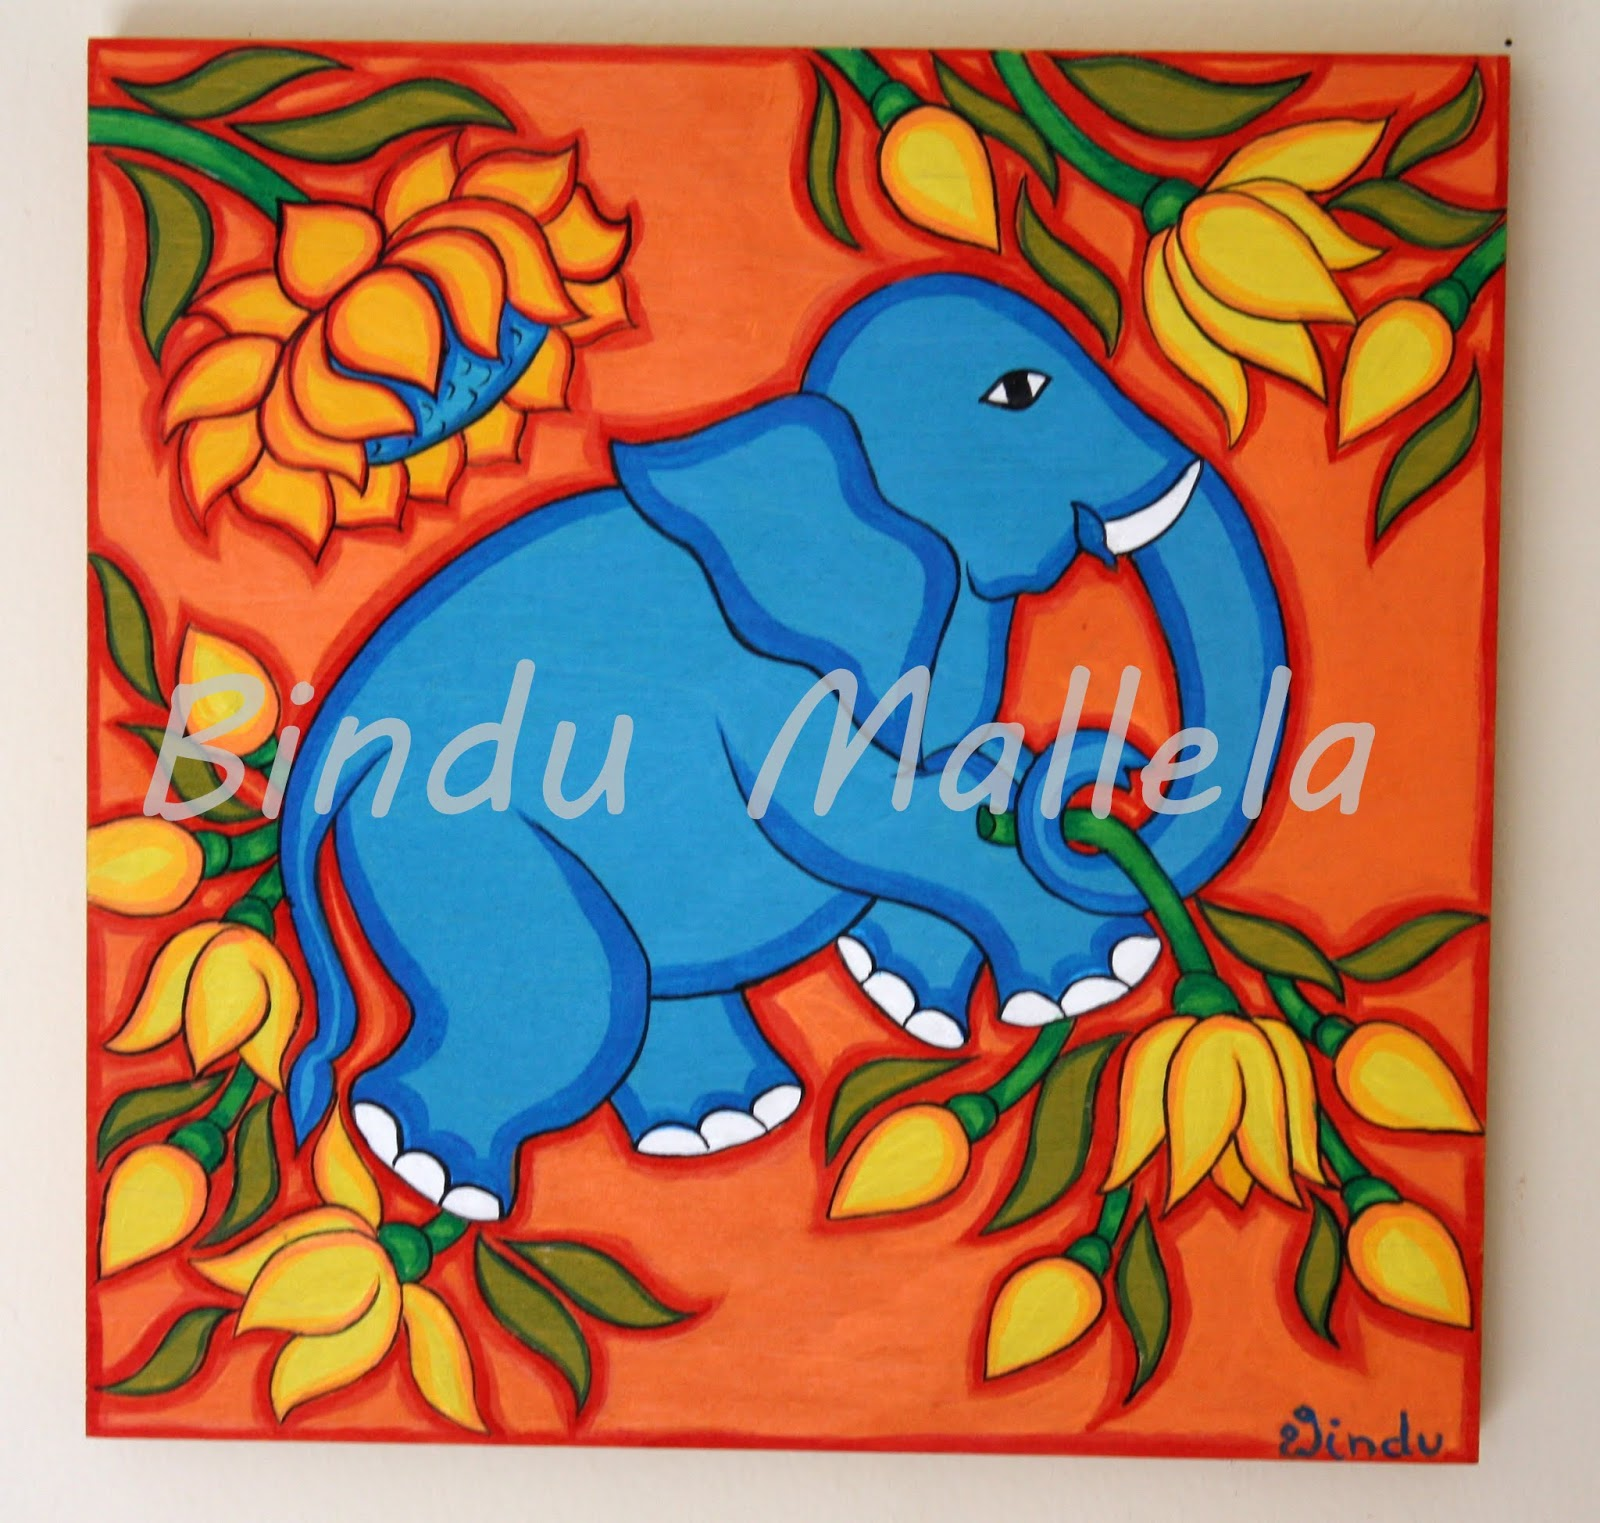 Crazy Painting Crazy For Colors Ajanta Motifs Inspired By Kerala Mural Painting